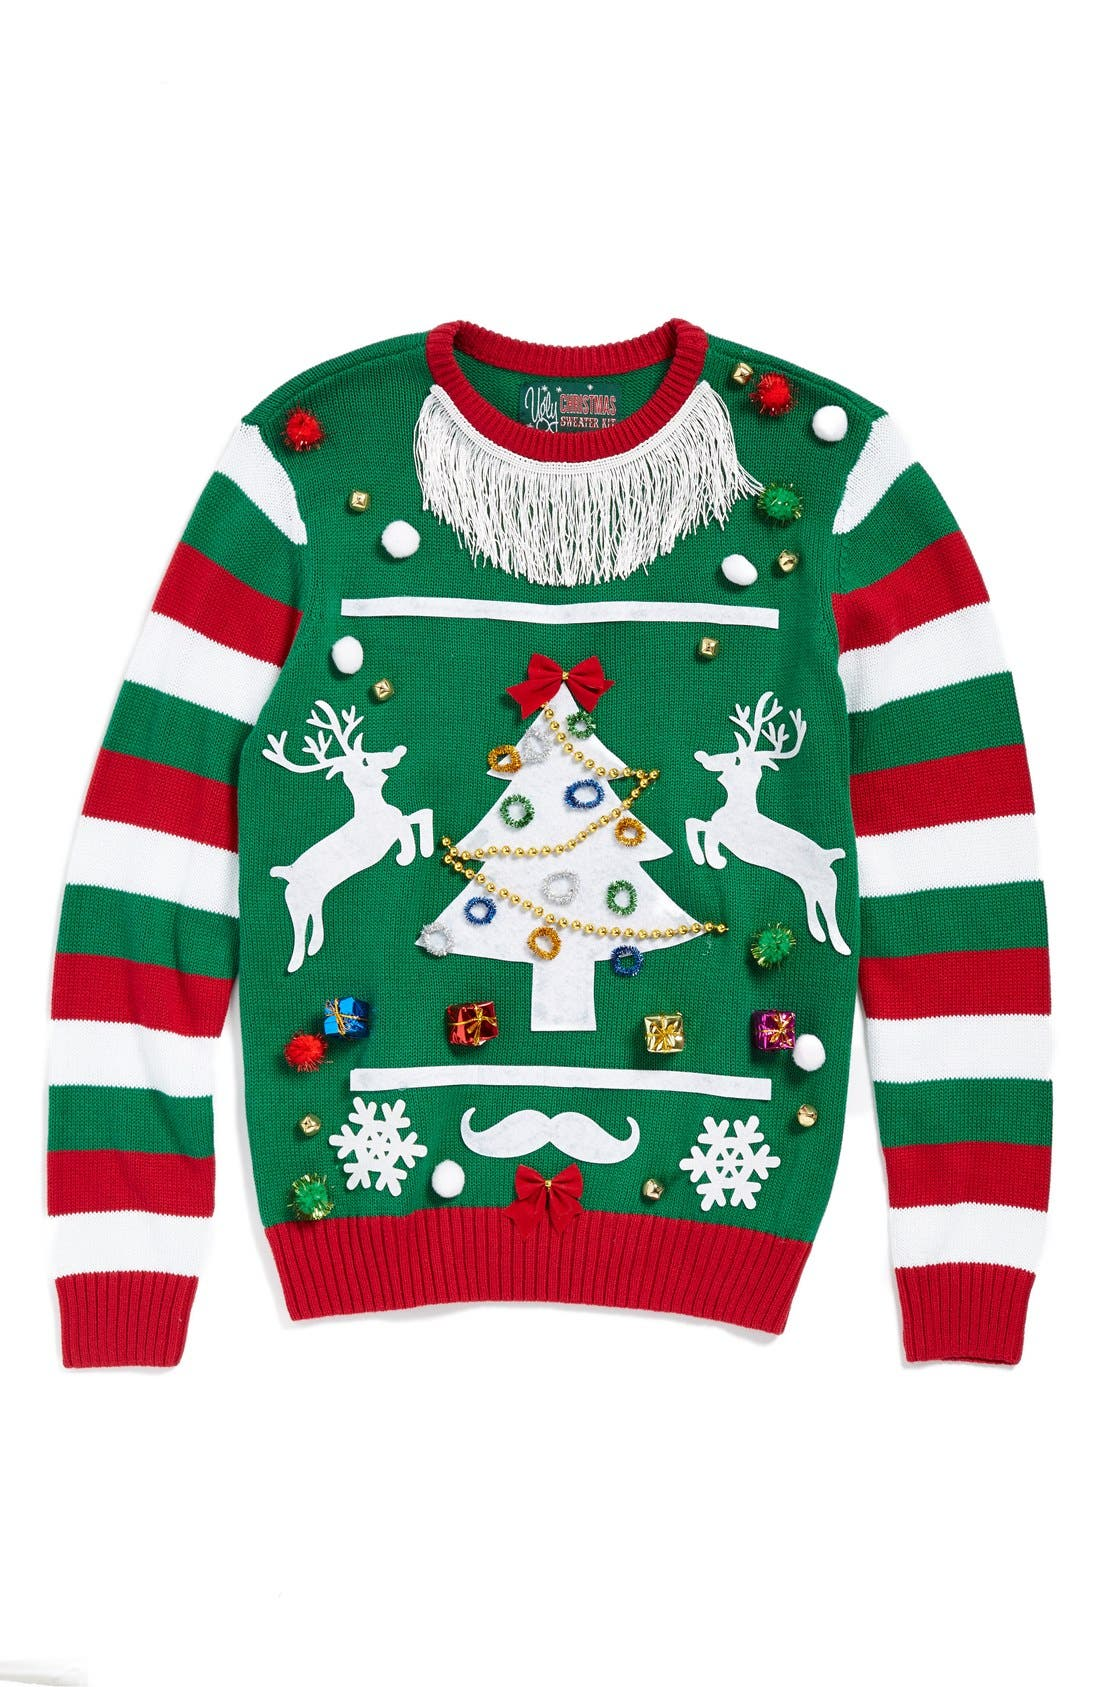 Main Image - Ugly Christmas Sweater 'Make Your Own - Green Stripe' Sweater Kit